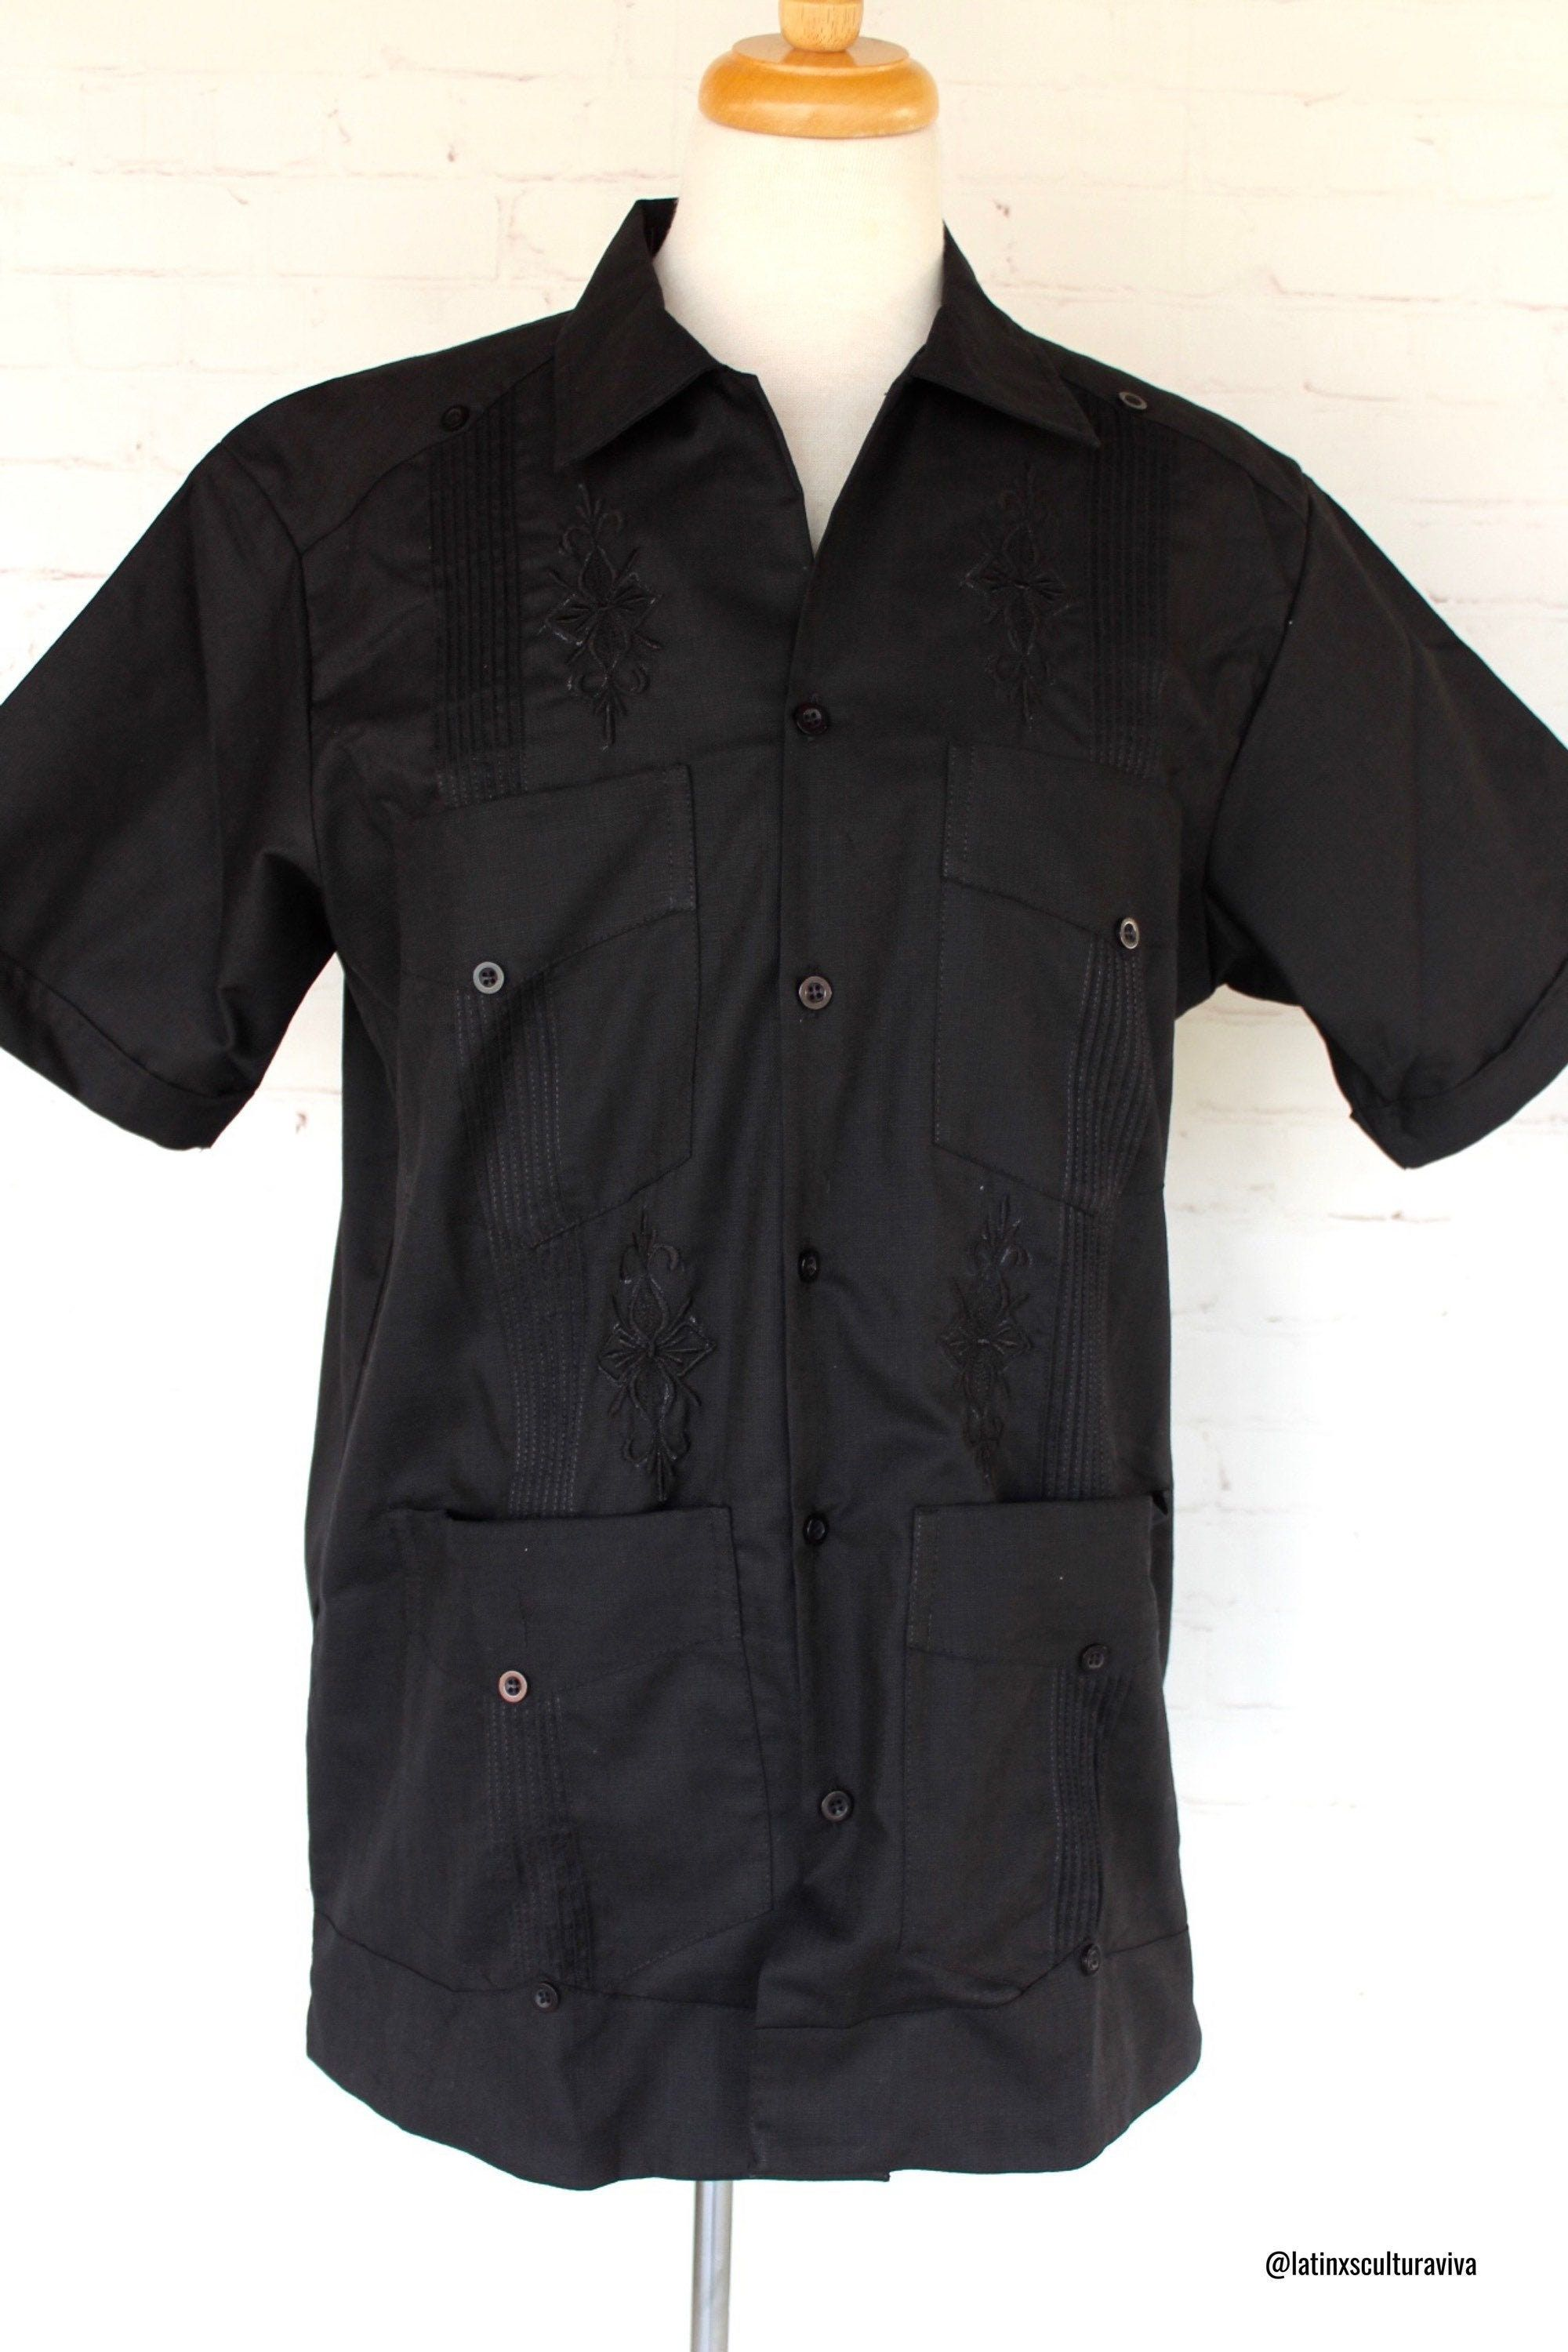 This Embroidered Guayabera is an elegant garment, and very versatile. Guayabera can be wear on formal occasions like weddings, meetings, or in relaxed places such as fiestas and beaches, etc. A Mexican Guayabera is definitely a garment that you must-have for any occasion. This is a linen guayabera with 4 pockets on the front. Note: We recommend washing by hand. Each Guayabera shirt that we sell is authentic and made with love by artisans from Yucatan, Mexico.